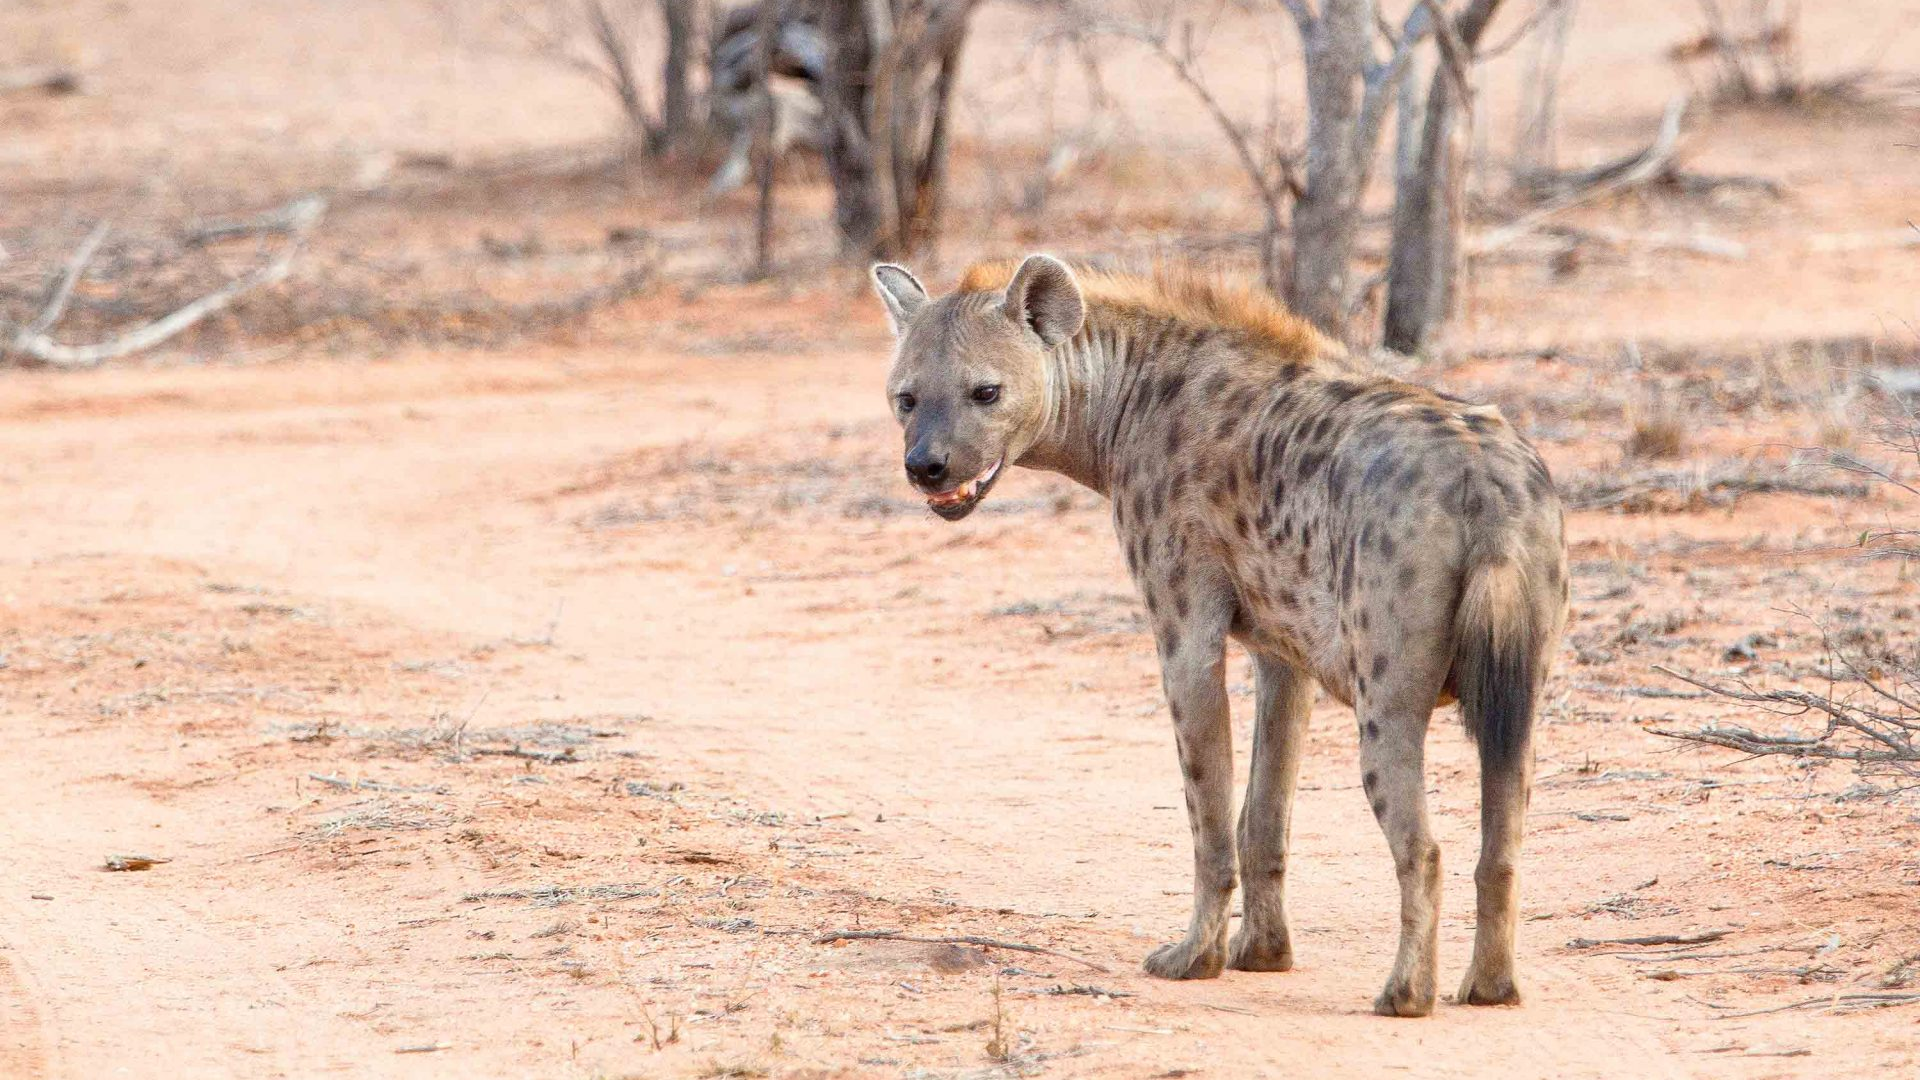 A hyena in Balule Nature Reserve in South Africa.